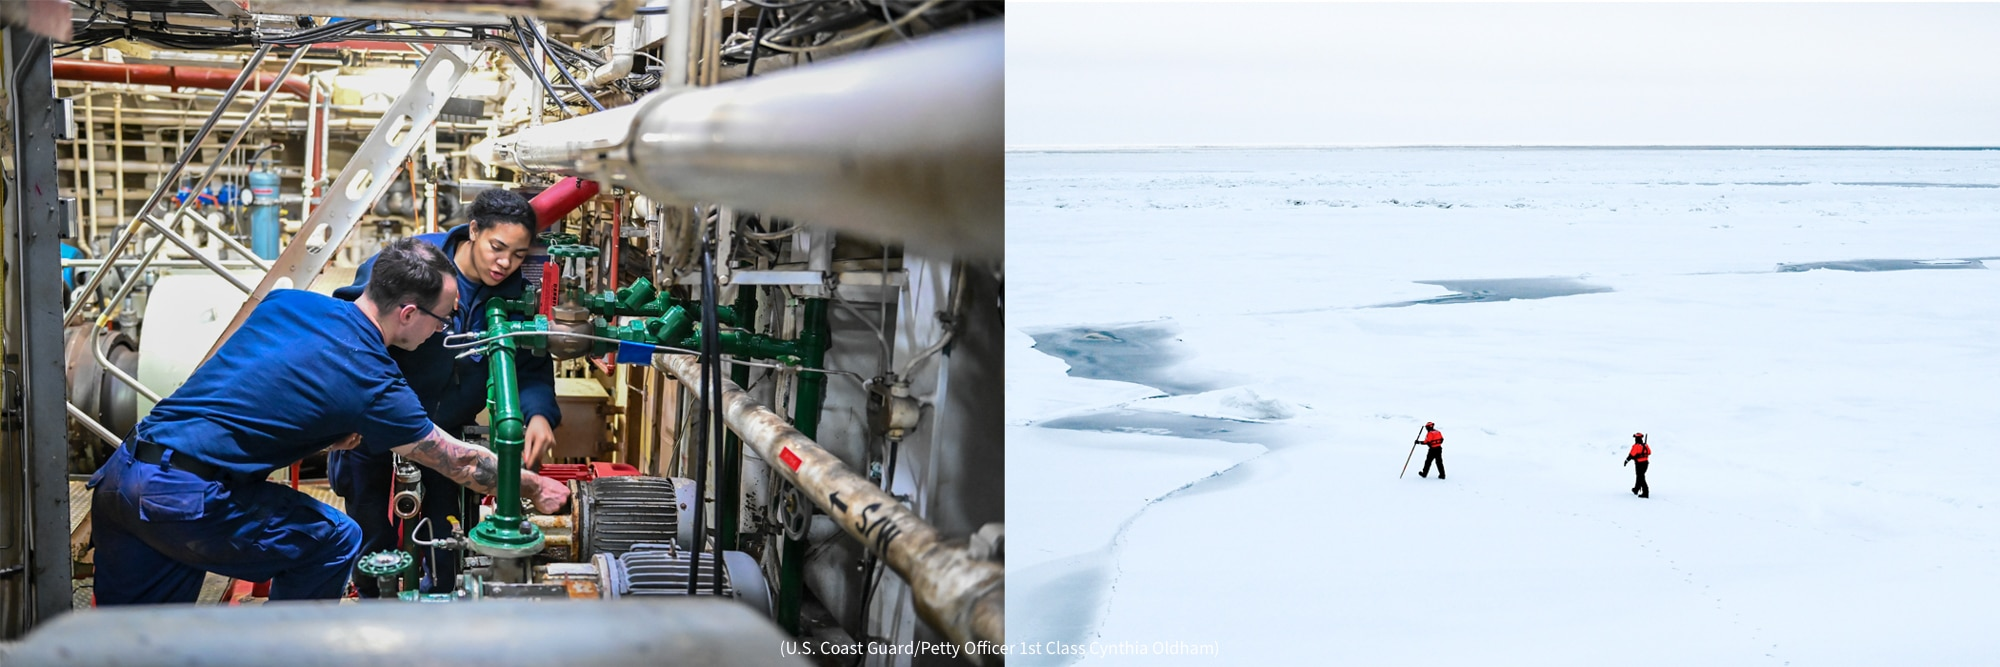 Left: Man and woman crew members working on equipment Right: View of ice-covered water with two people walking across (U.S. Coast Guard/Petty Officer 1st Class Cynthia Oldham)